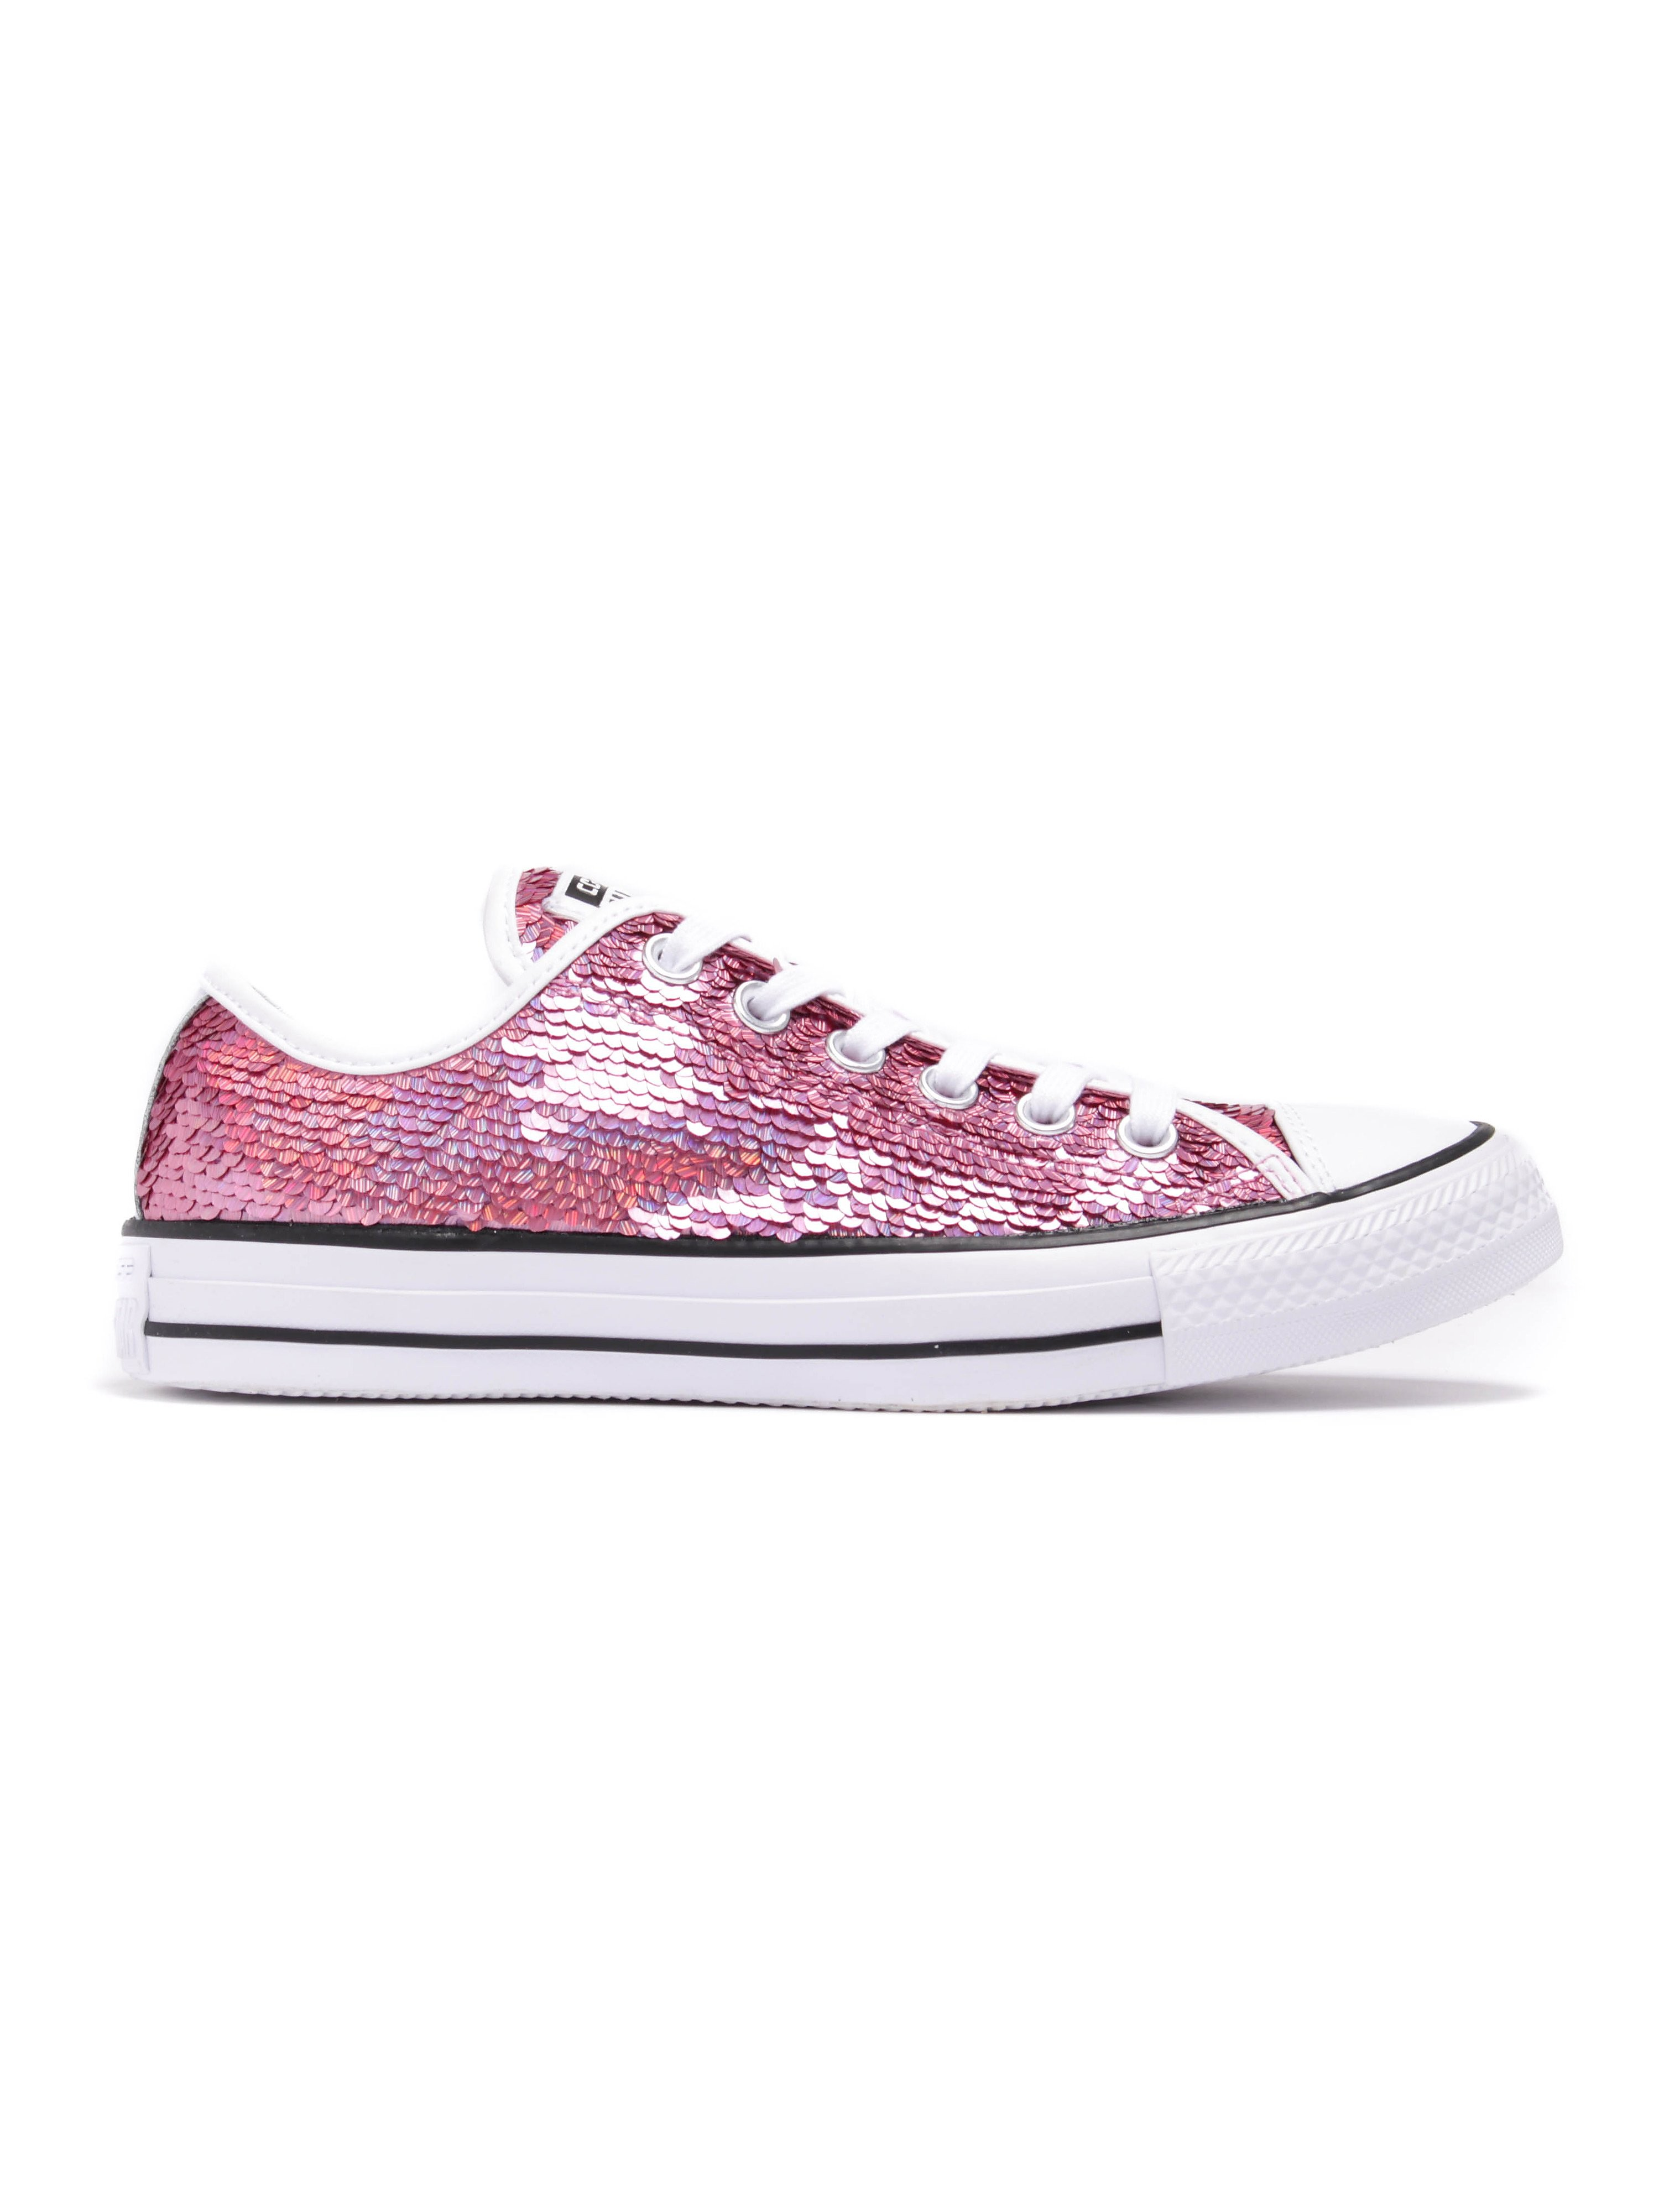 Converse All Star Ox - Passion Pink